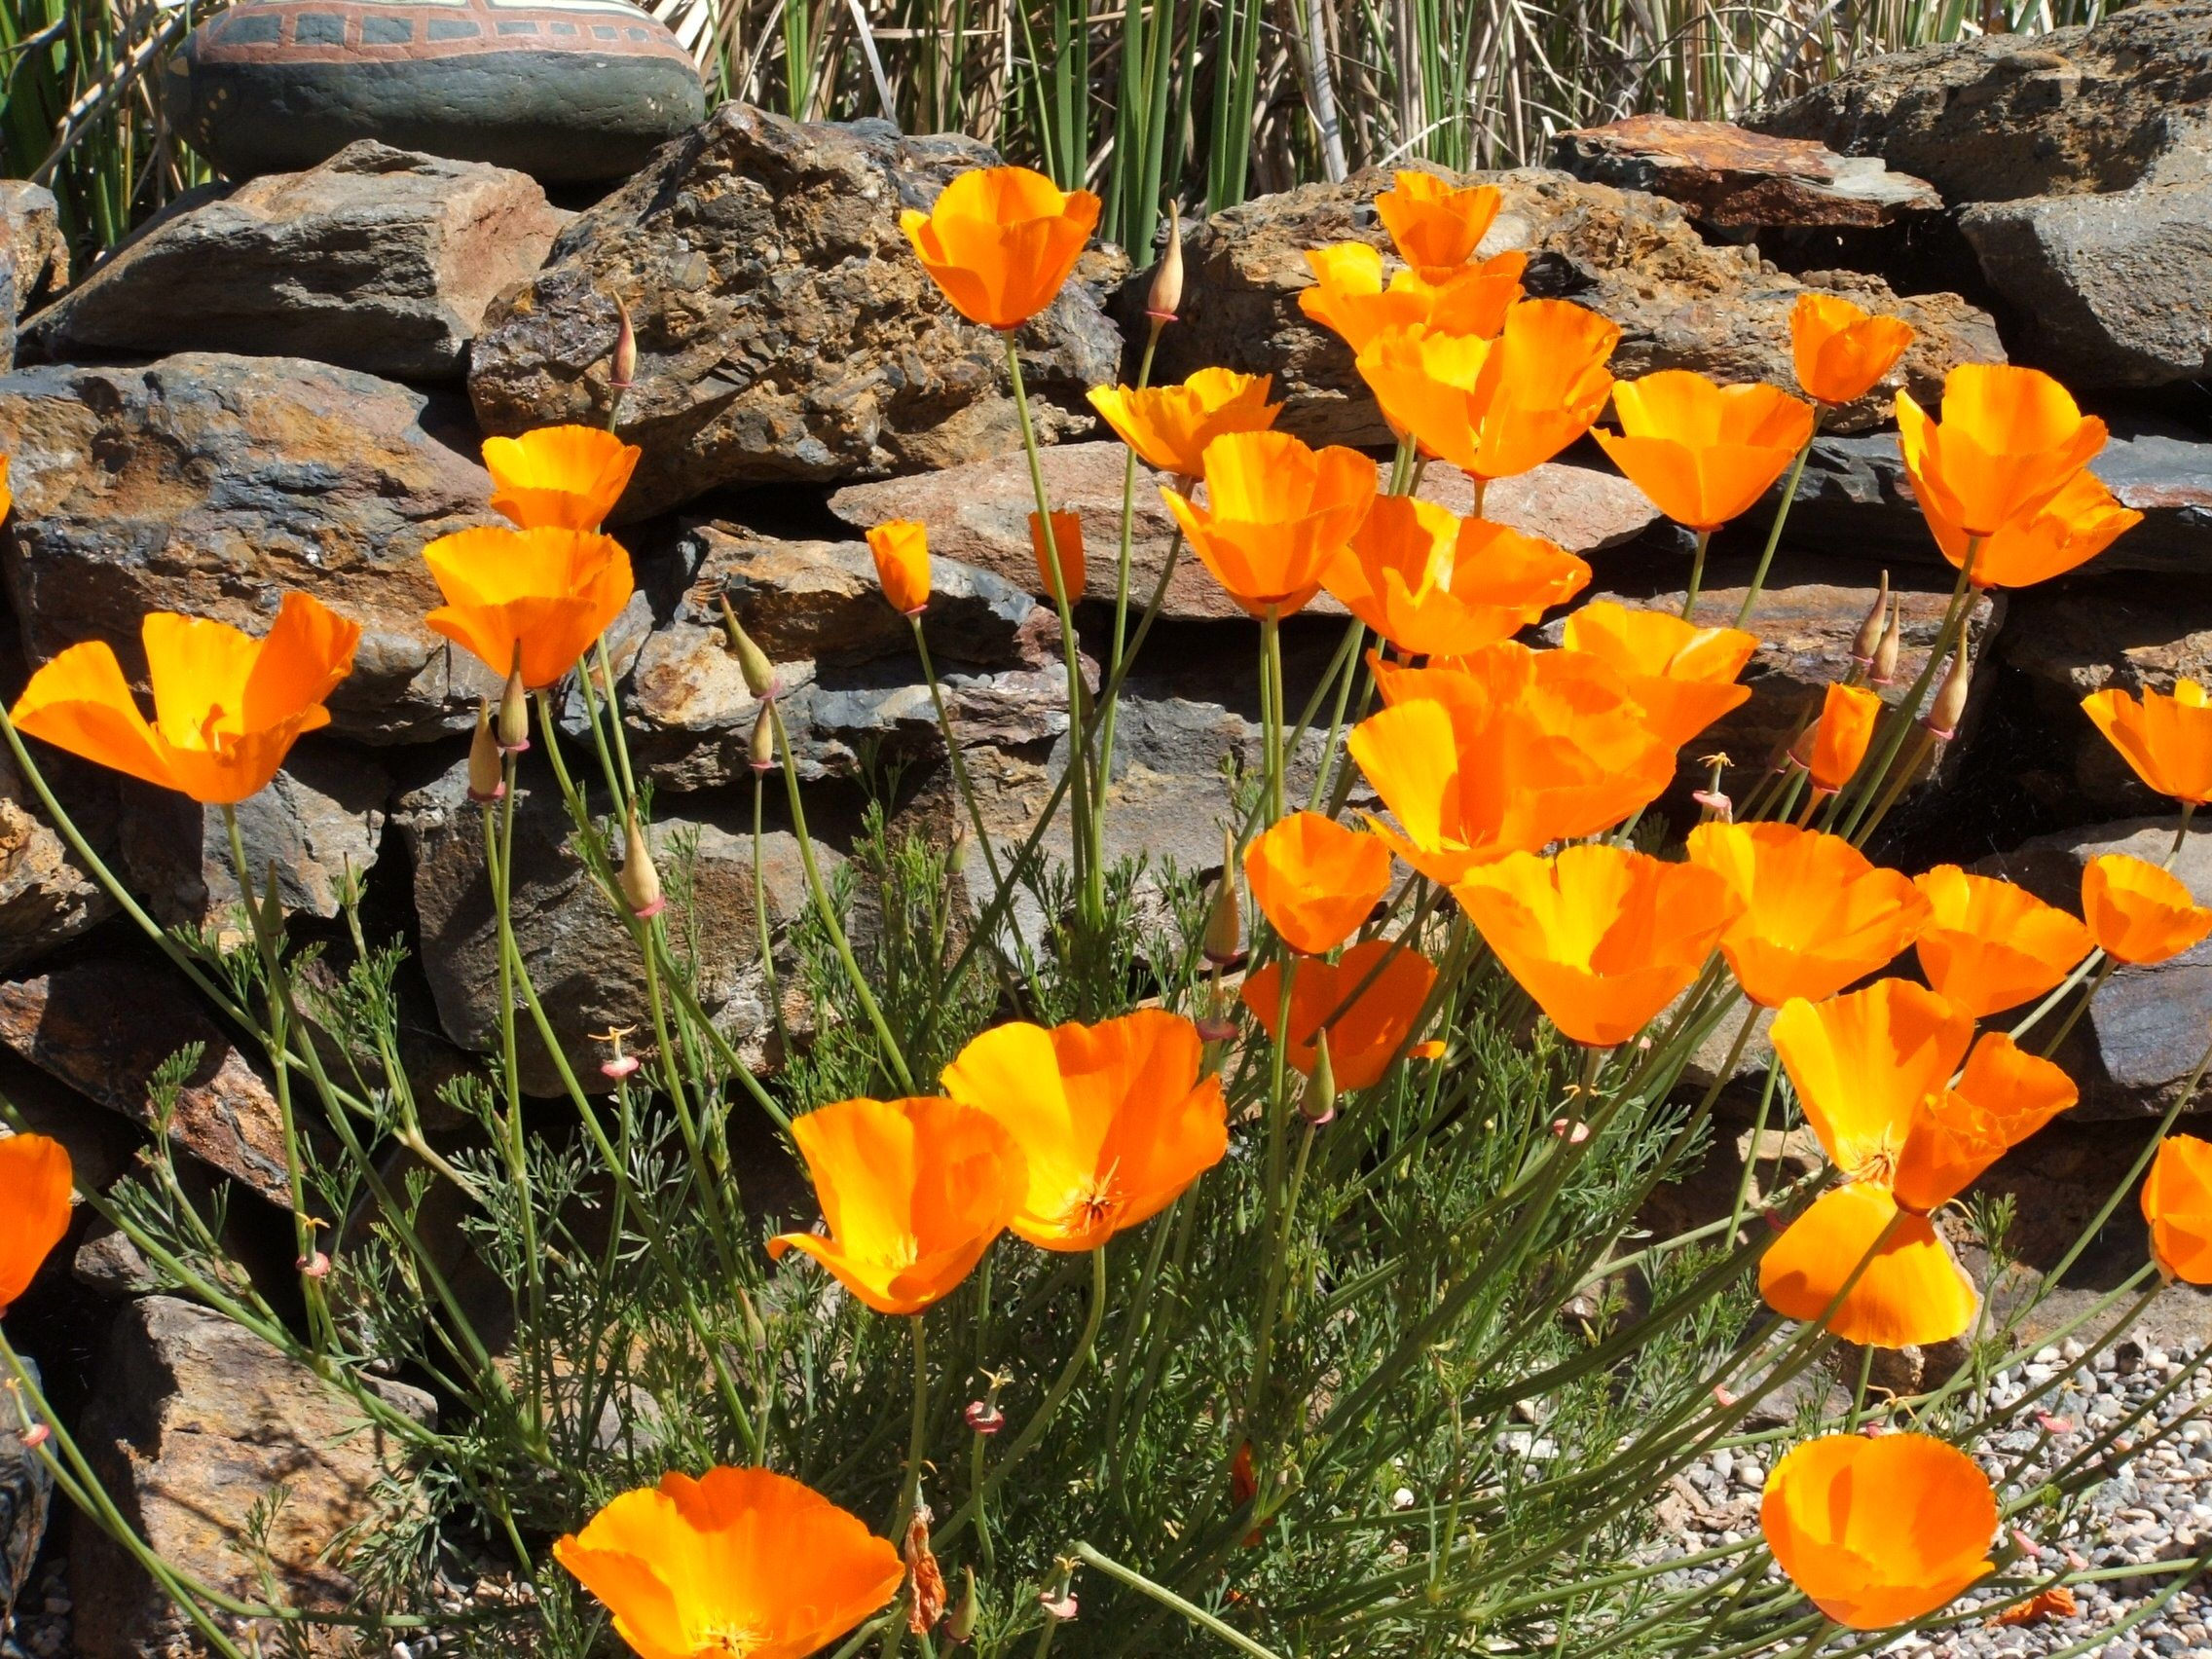 California Poppy (Eschscholzia Californica) - this famous perennial is easy to grow and drought tolerant (perfect for California!)